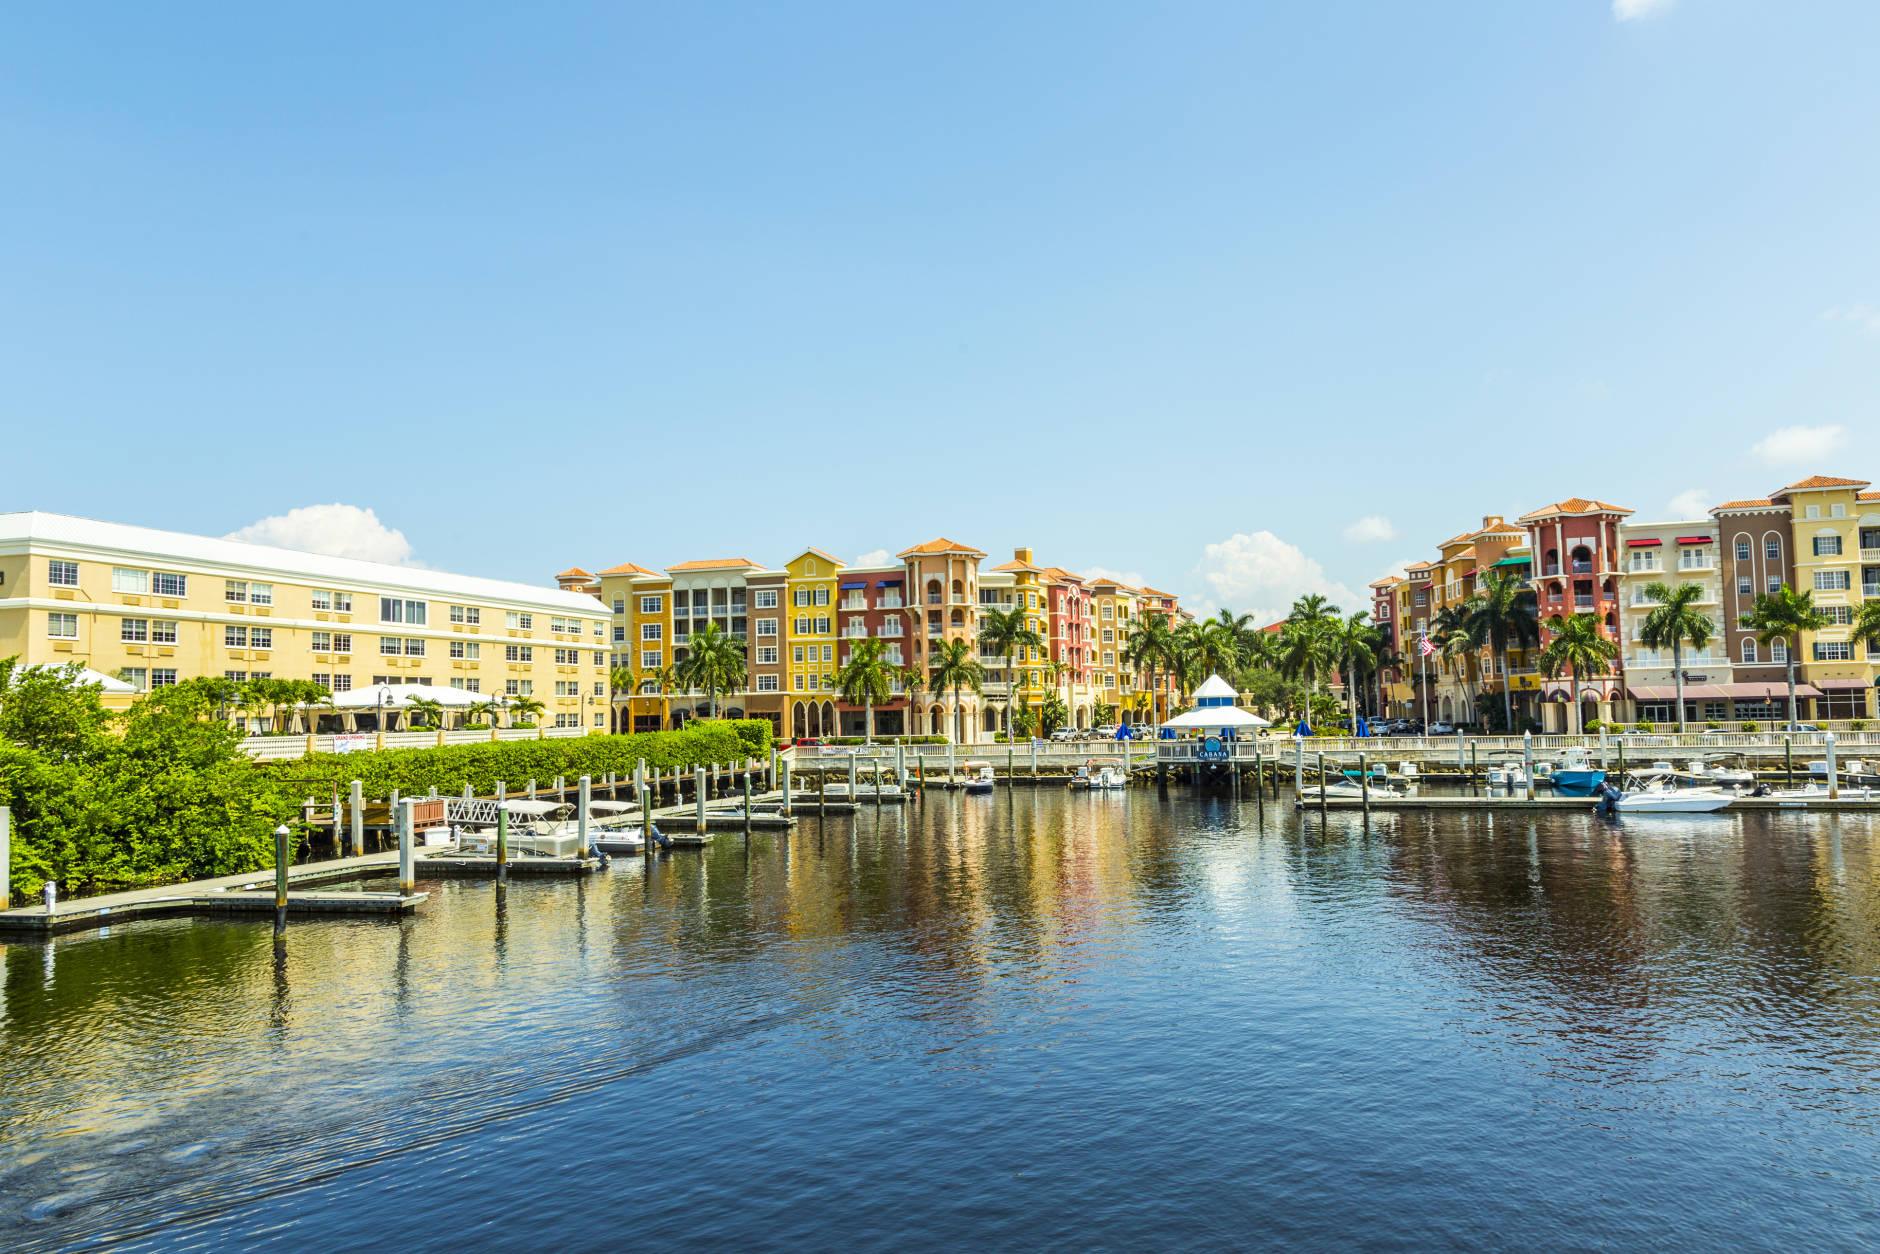 8. Naples, Florida  Colorful Spanish influenced buildings overlooking the water are some of the scenes in Naples, Florida. (Getty Images/iStockphoto/Meinzahn)